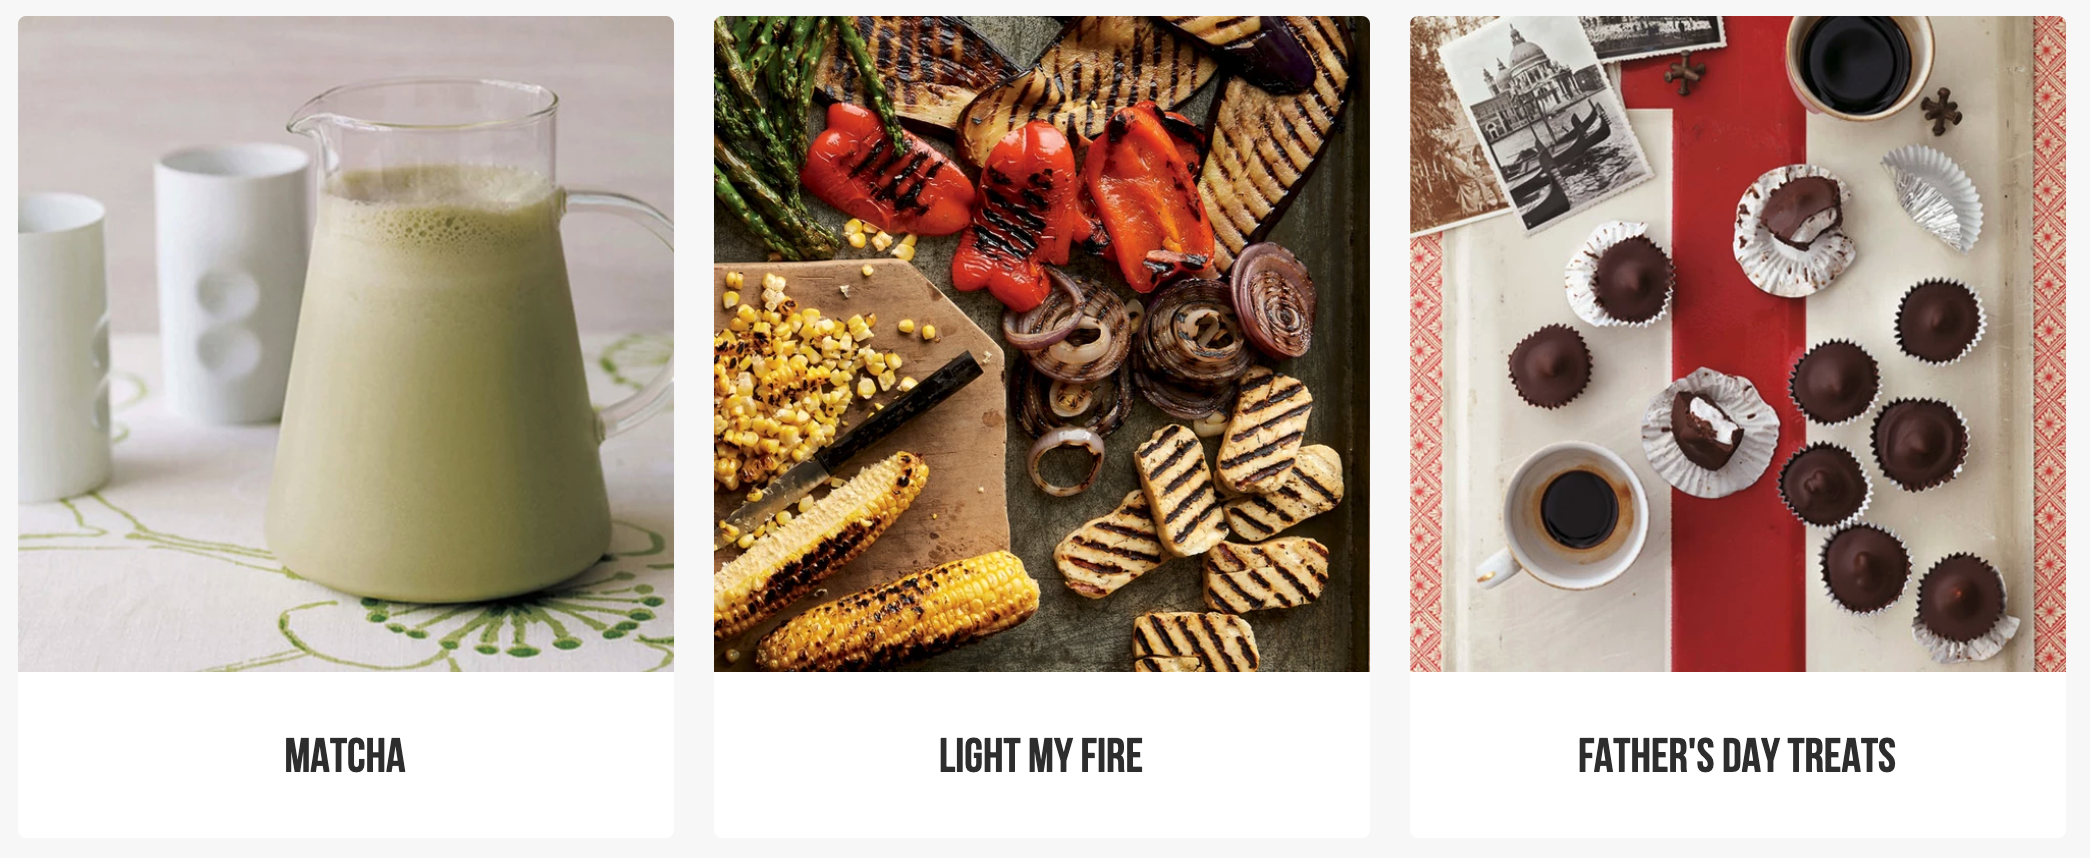 Explore recipe collection curated by our team